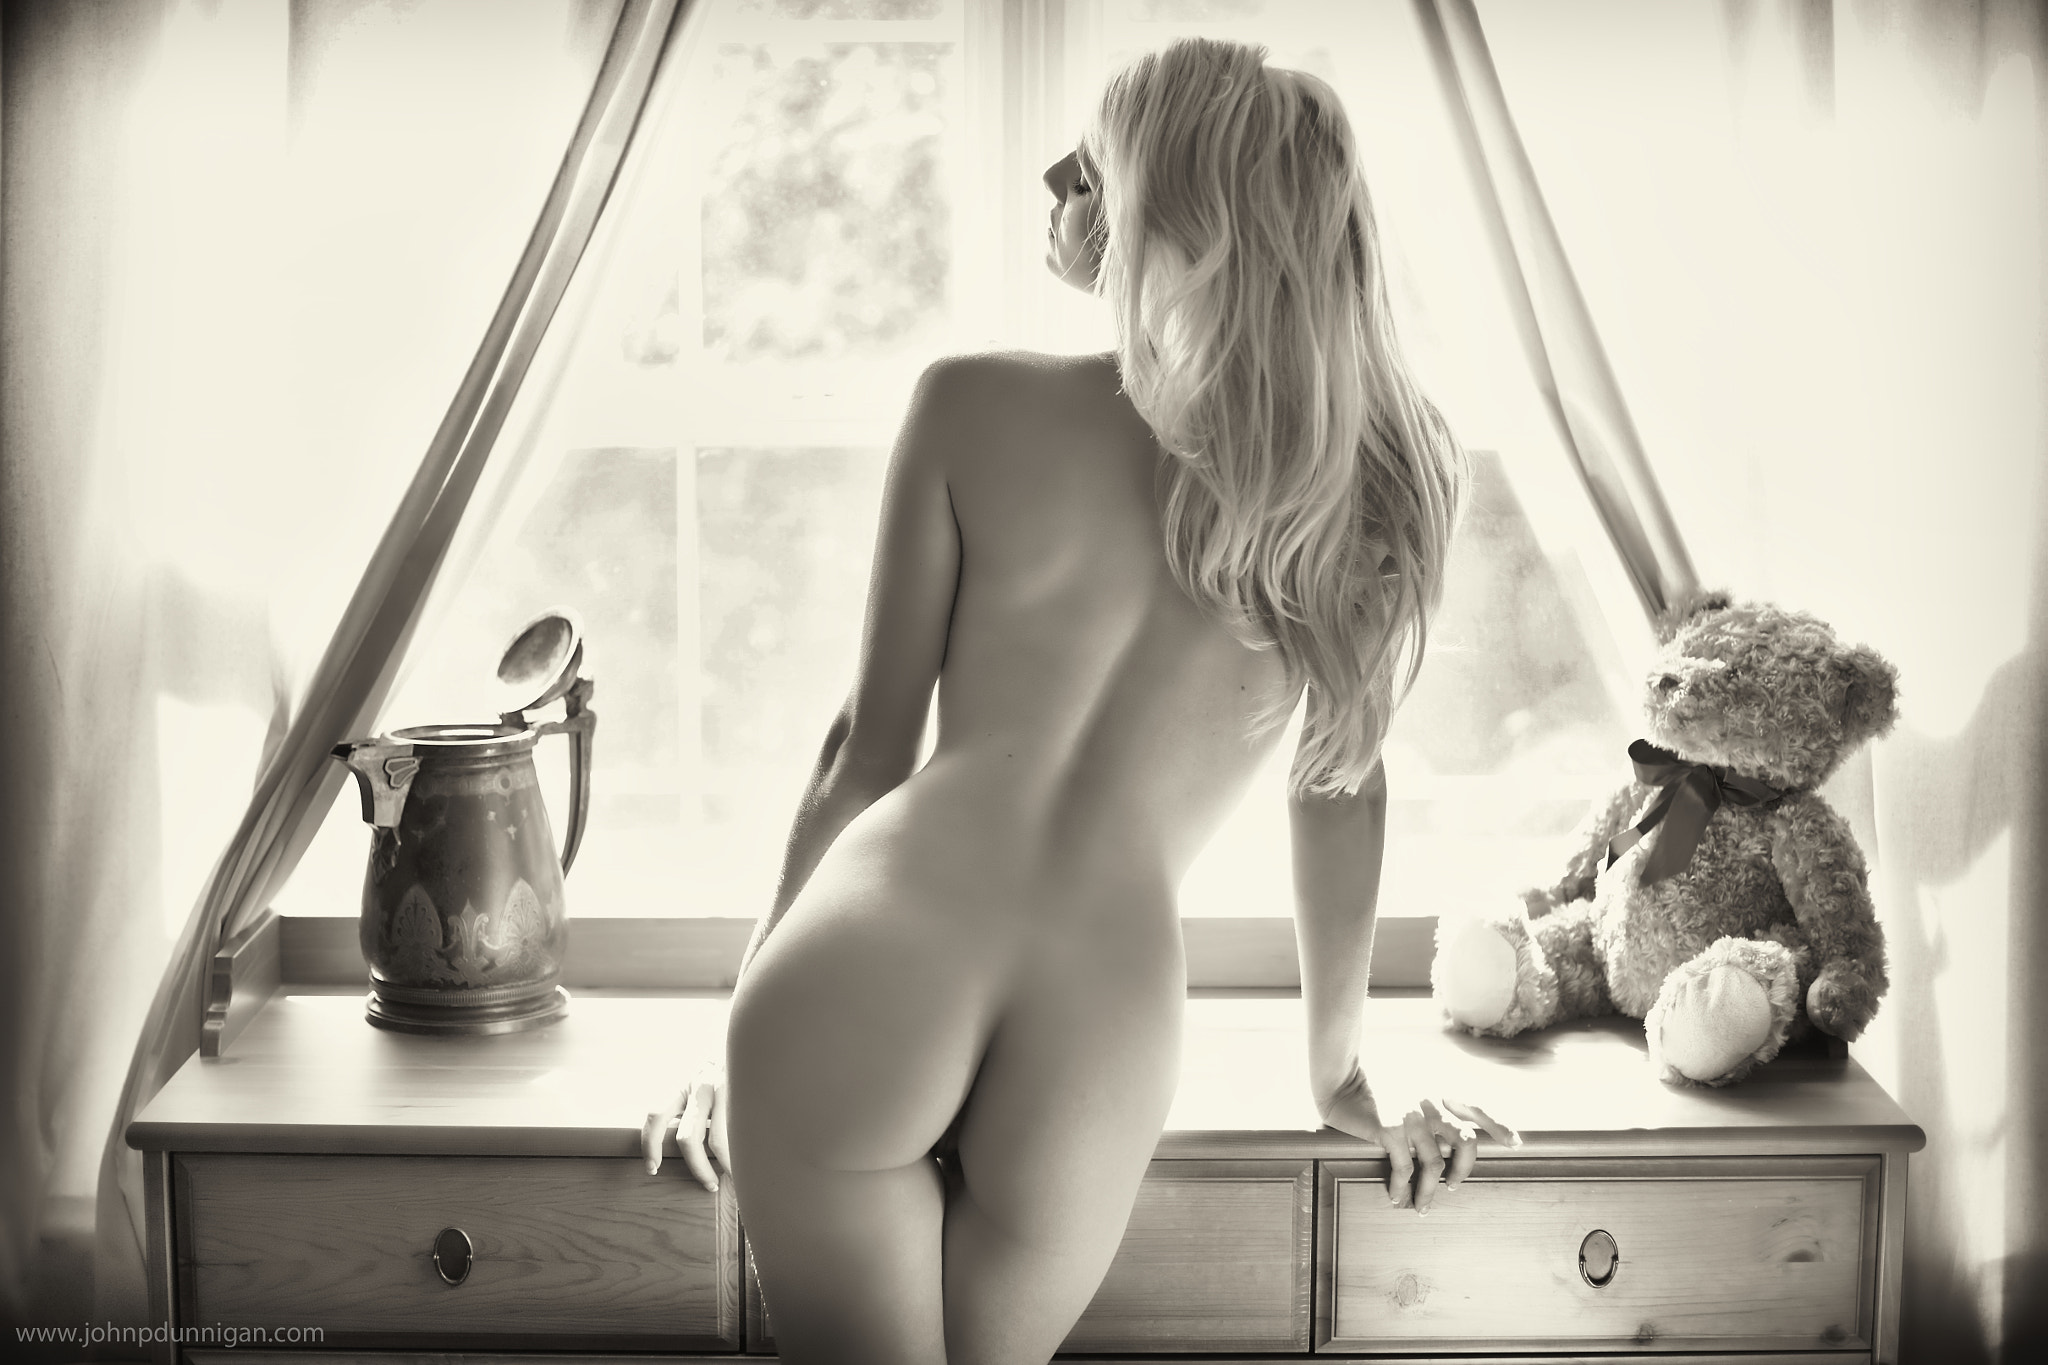 Photograph nude - afternoon sun by John Dunnigan on 500px